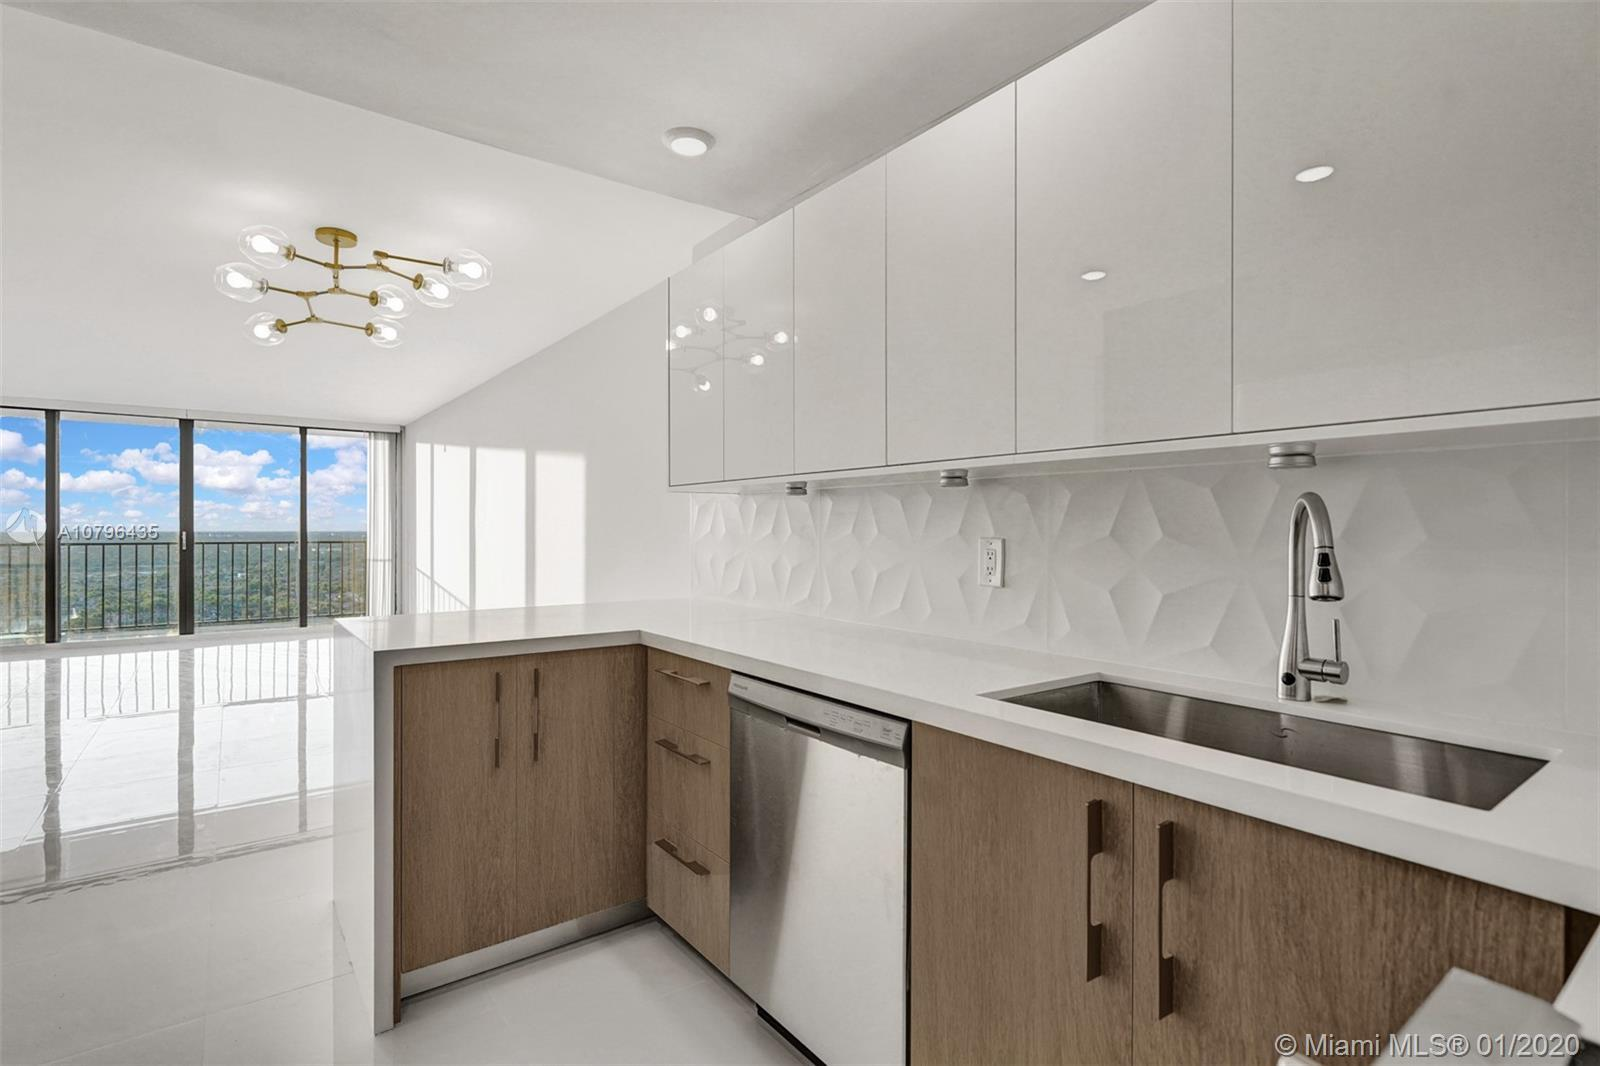 JUST LISTED FOR SALE. Magnificent fully remodeled lower penthouse 27th floor unit with unobstructed